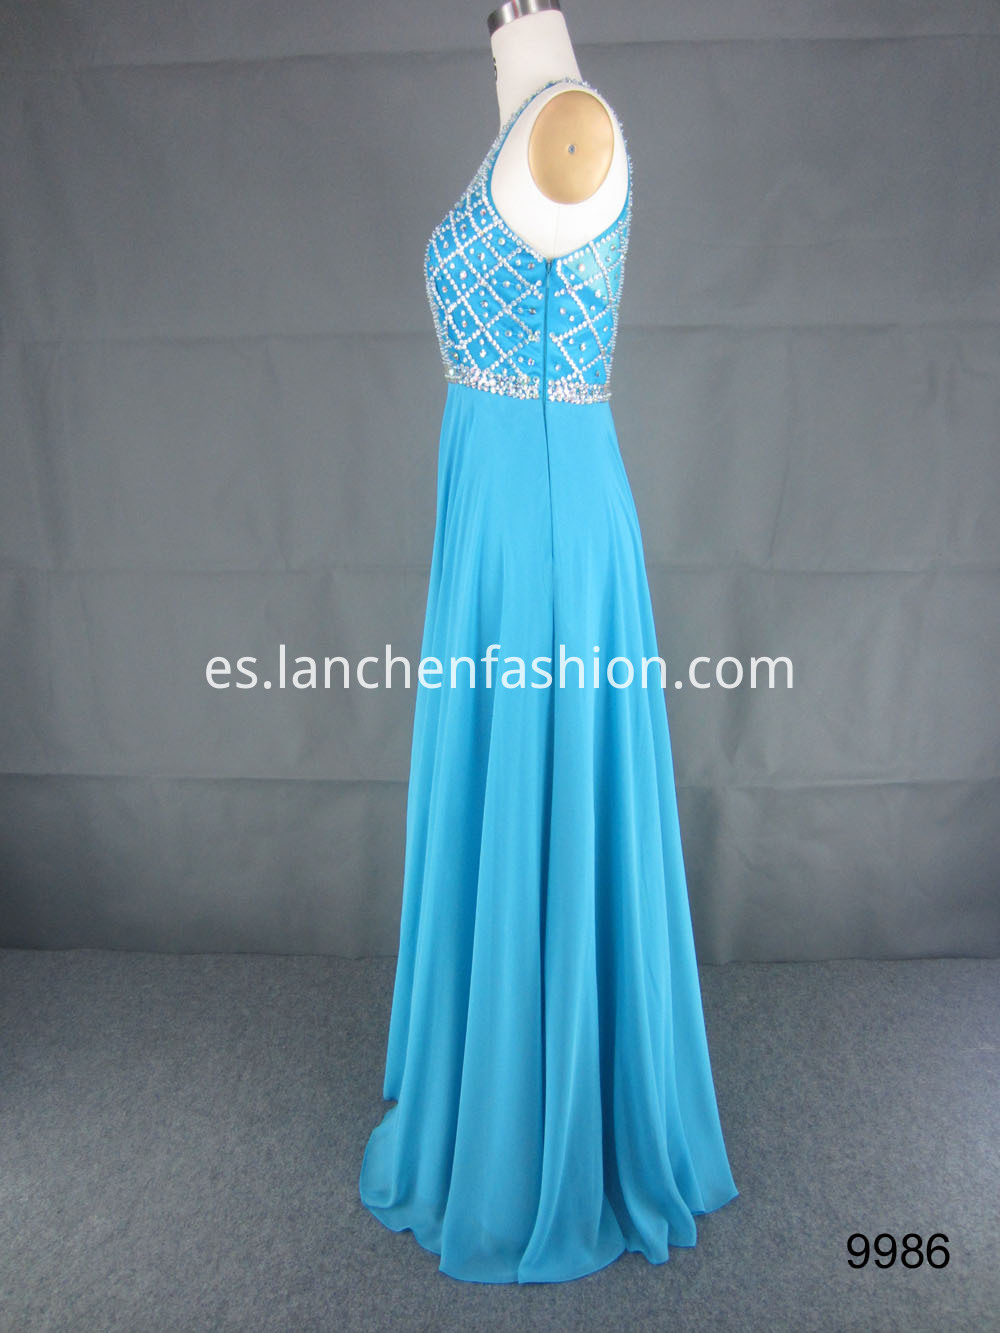 Women's Floor Length Dresses